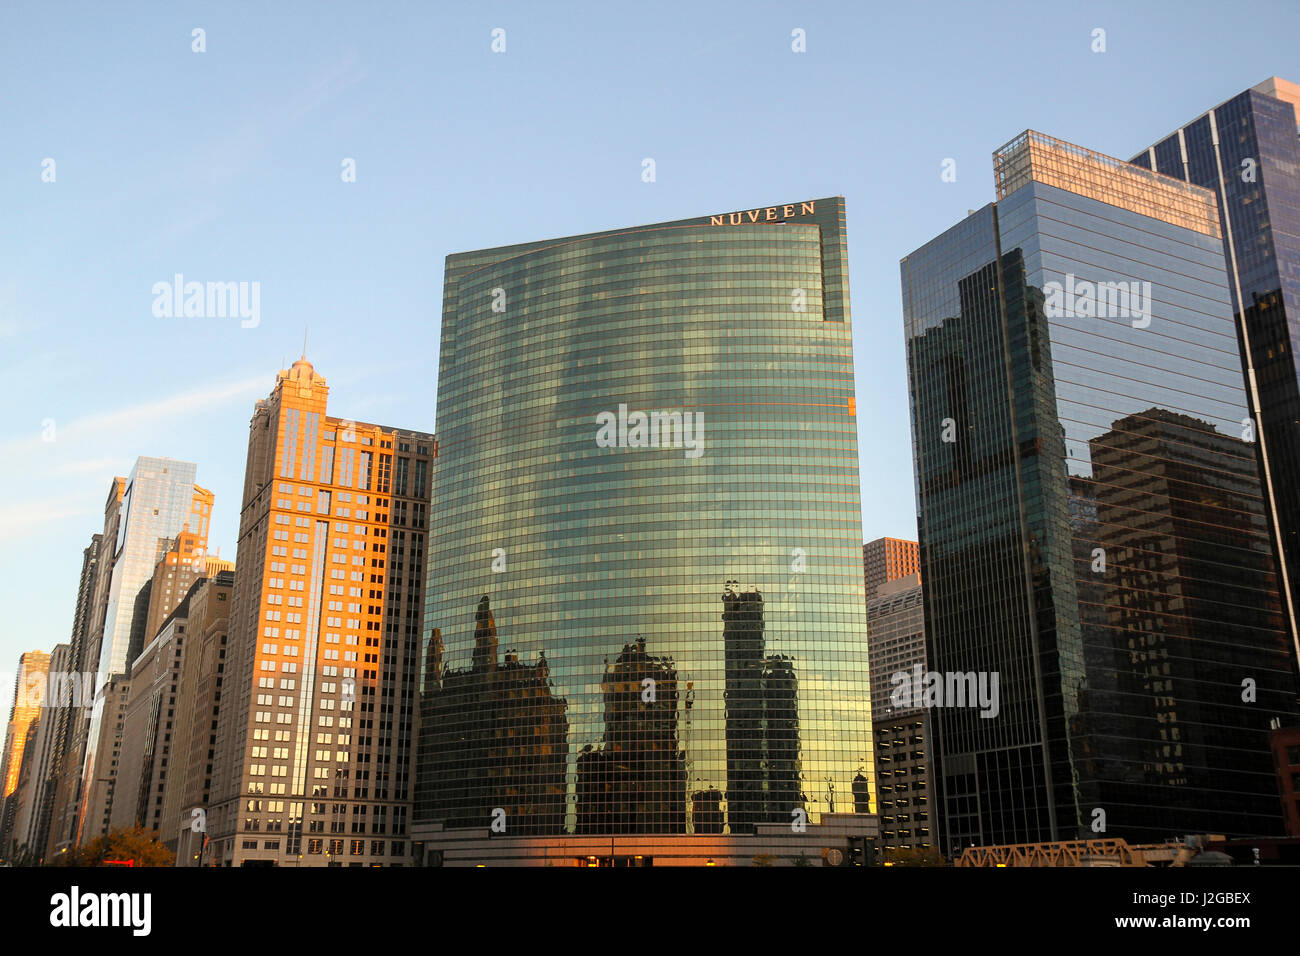 Skyscrapers, including 333 Wacker Drive, Chicago, Illinois, USA. The building was designed by the firm Kohn Pederson - Stock Image